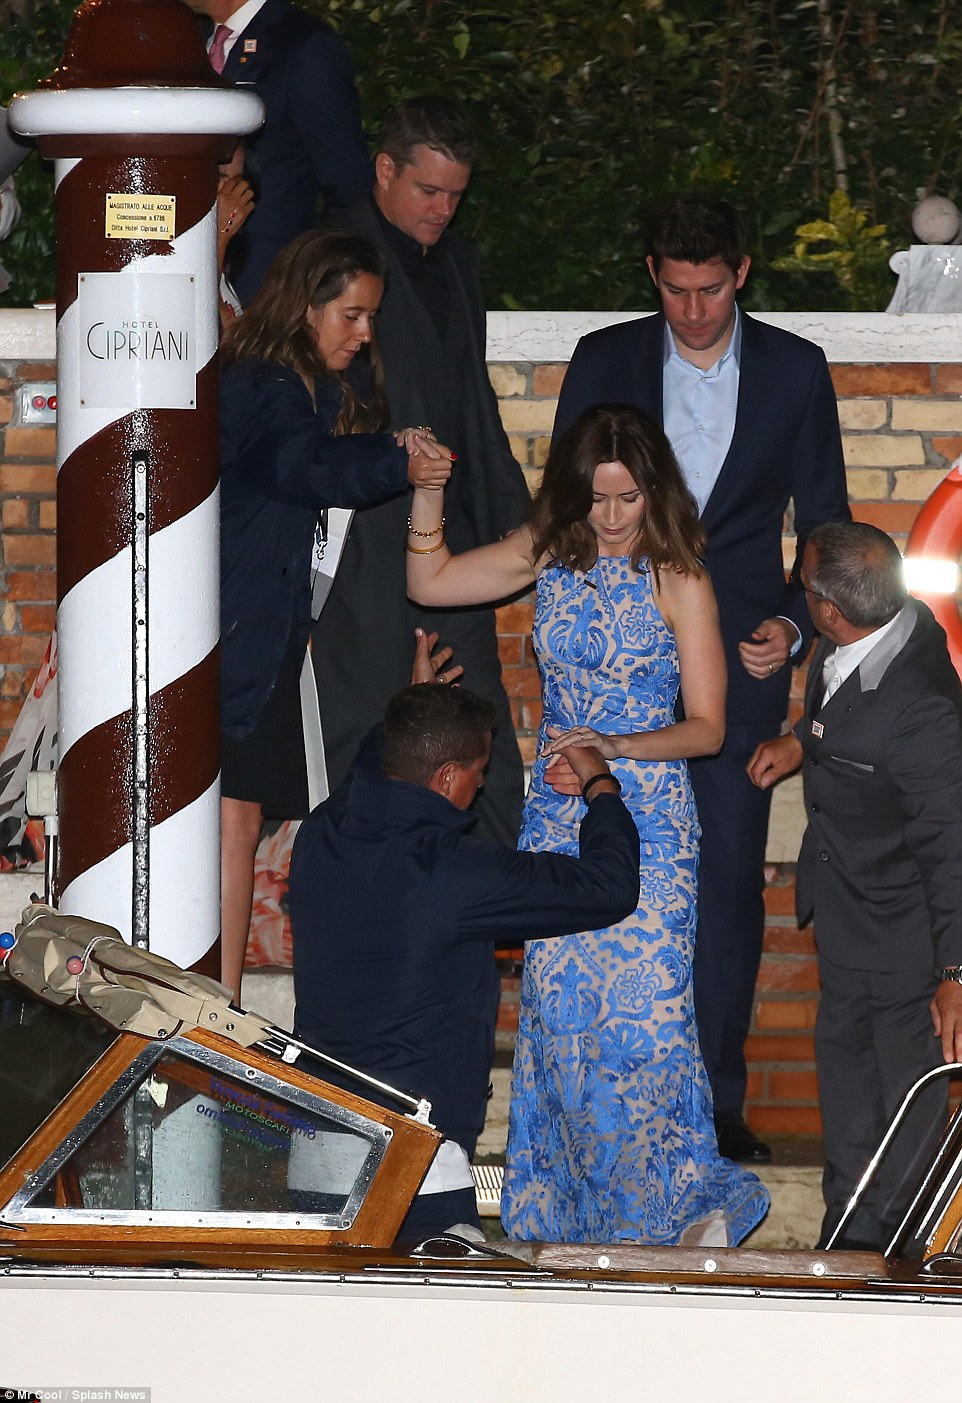 Star-studded: Emily Blunt - who is joined by her husband John Krasinski - gets a helping hand as she climbed onto the boat